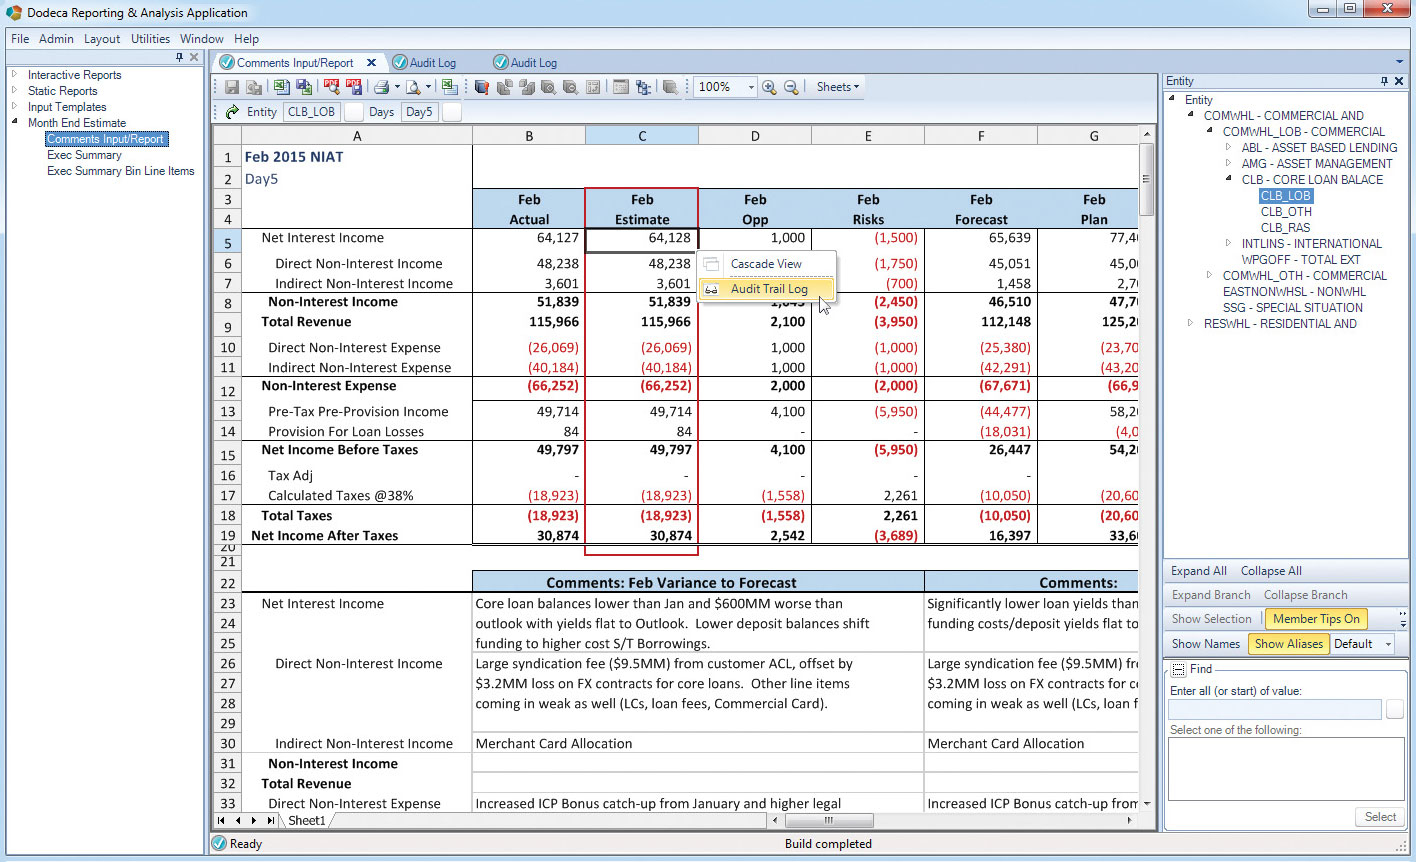 Spreadsheet Control Software Pertaining To Managing Spreadsheet Risk: Dodeca Spreadsheet Management System